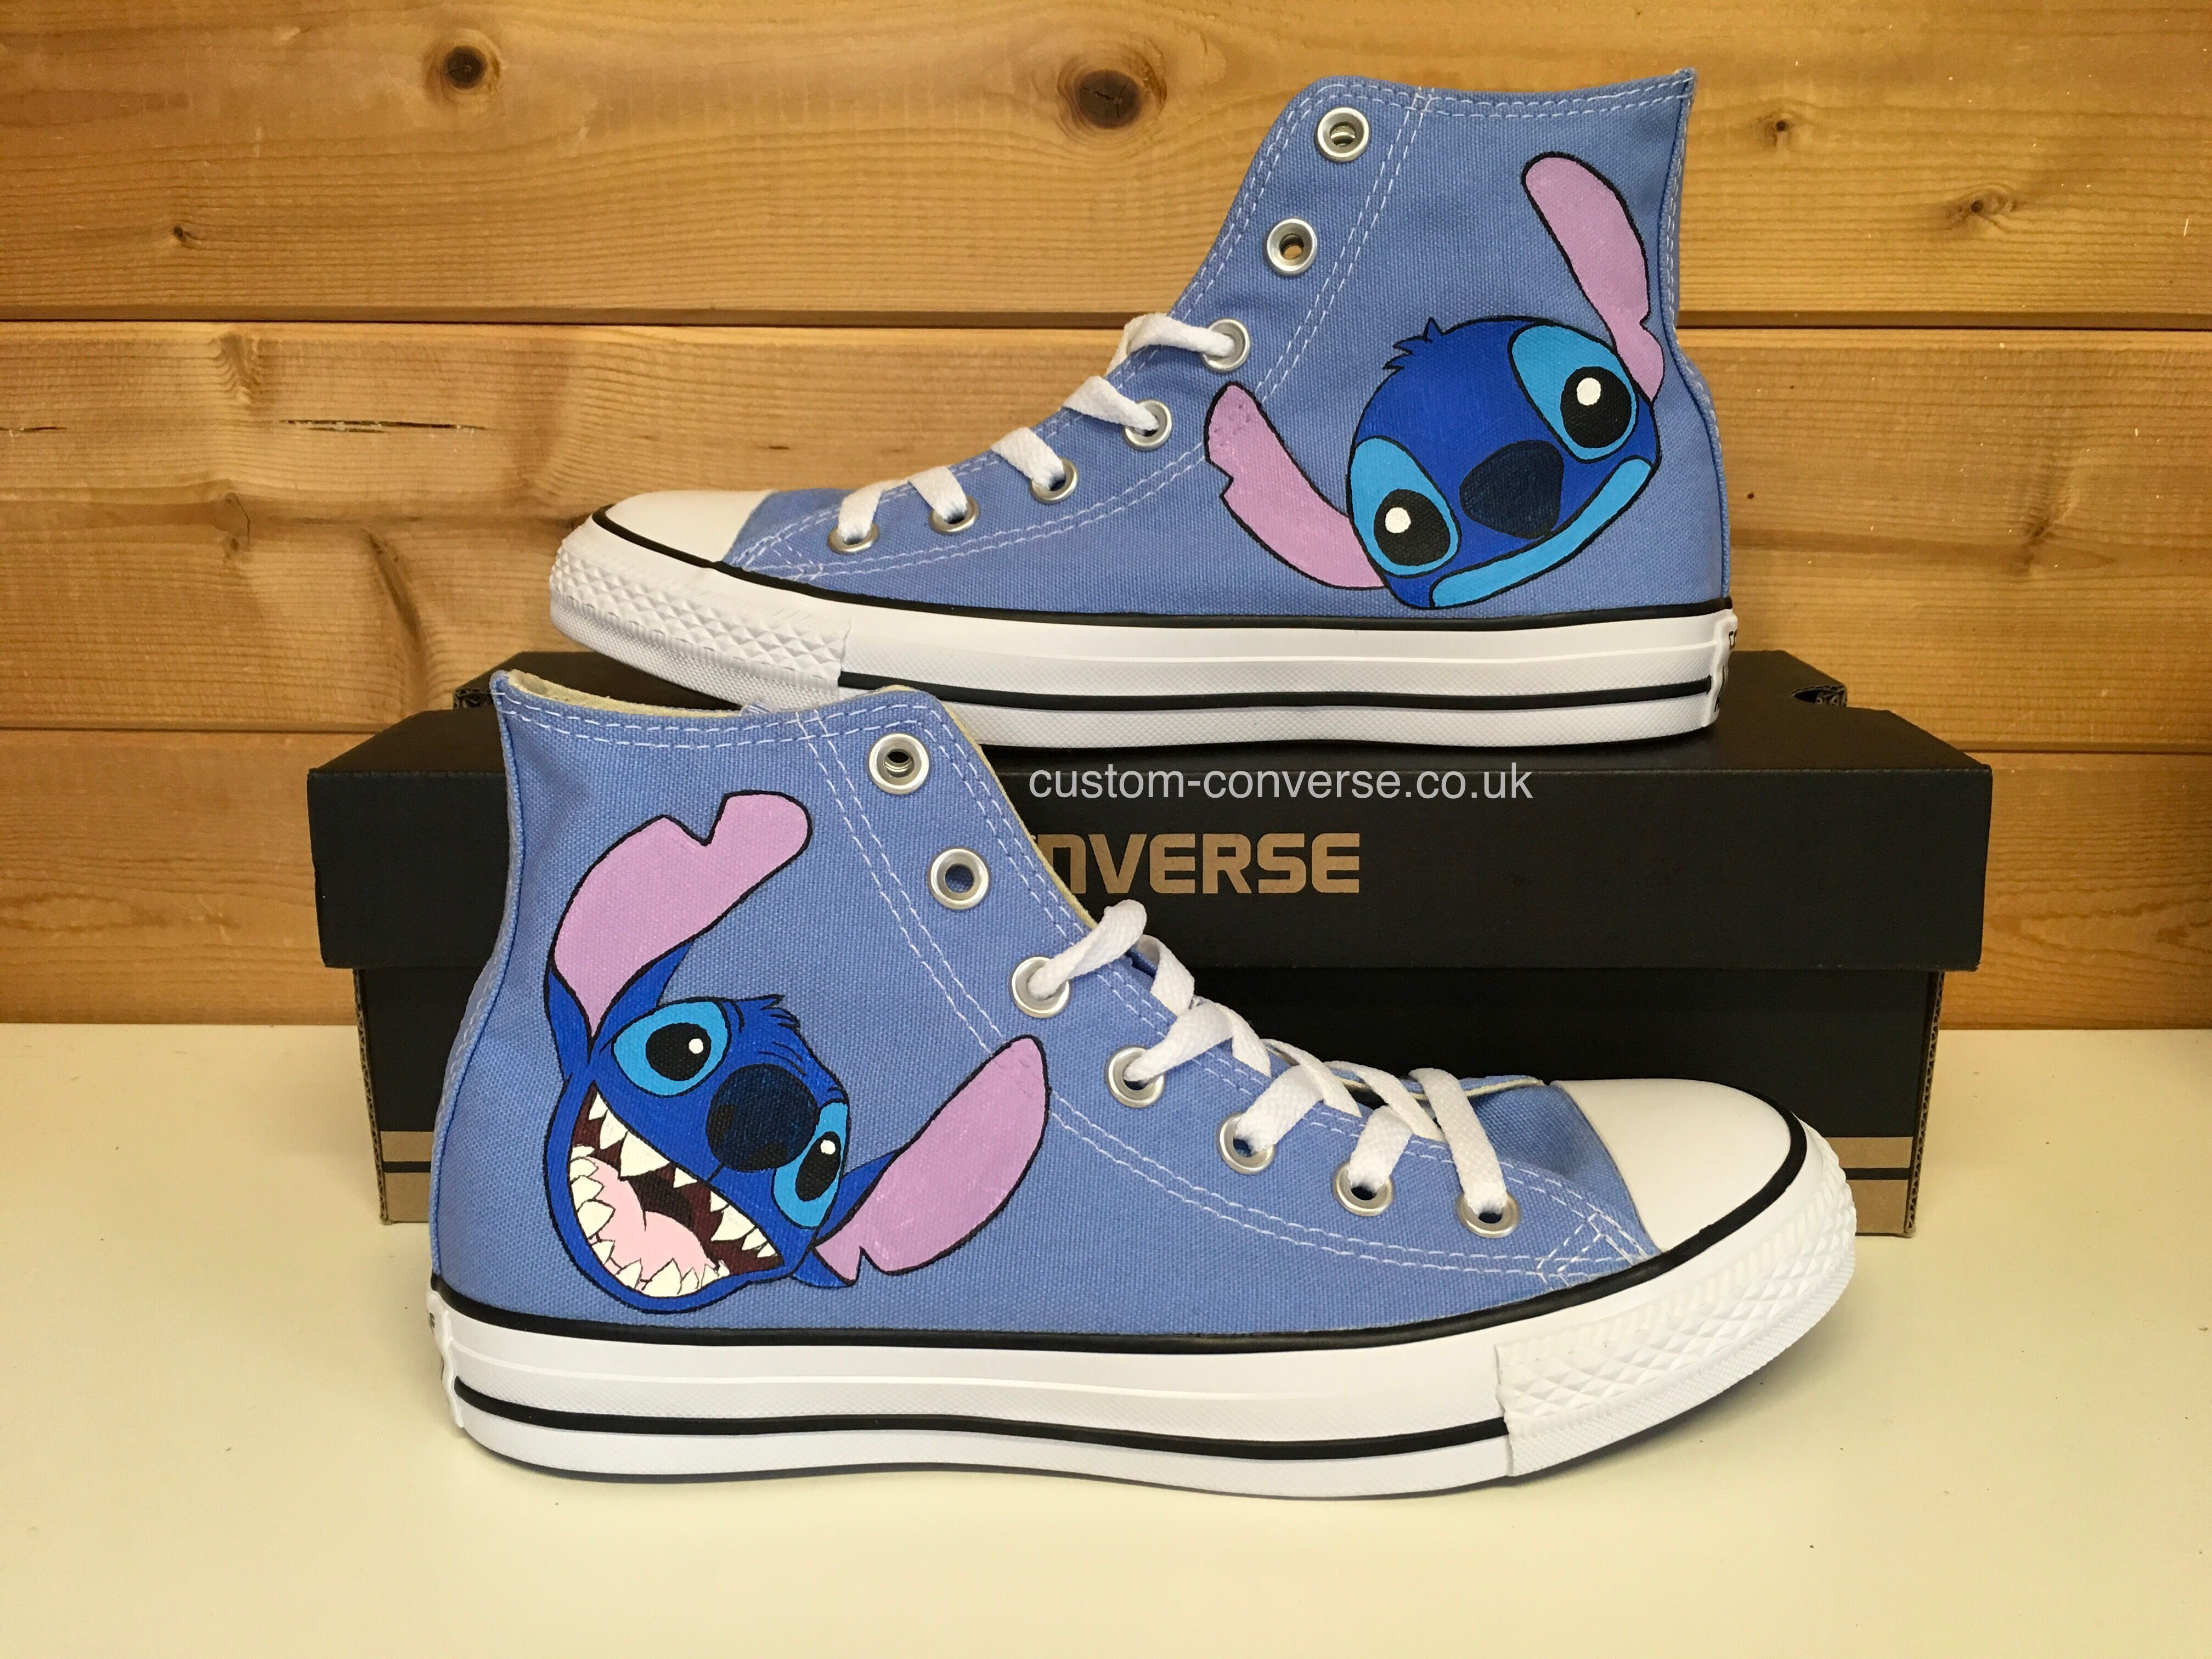 a1fdaaacc44c Stitch High Top Converse. Stitch High Top Converse Design Your Own ...